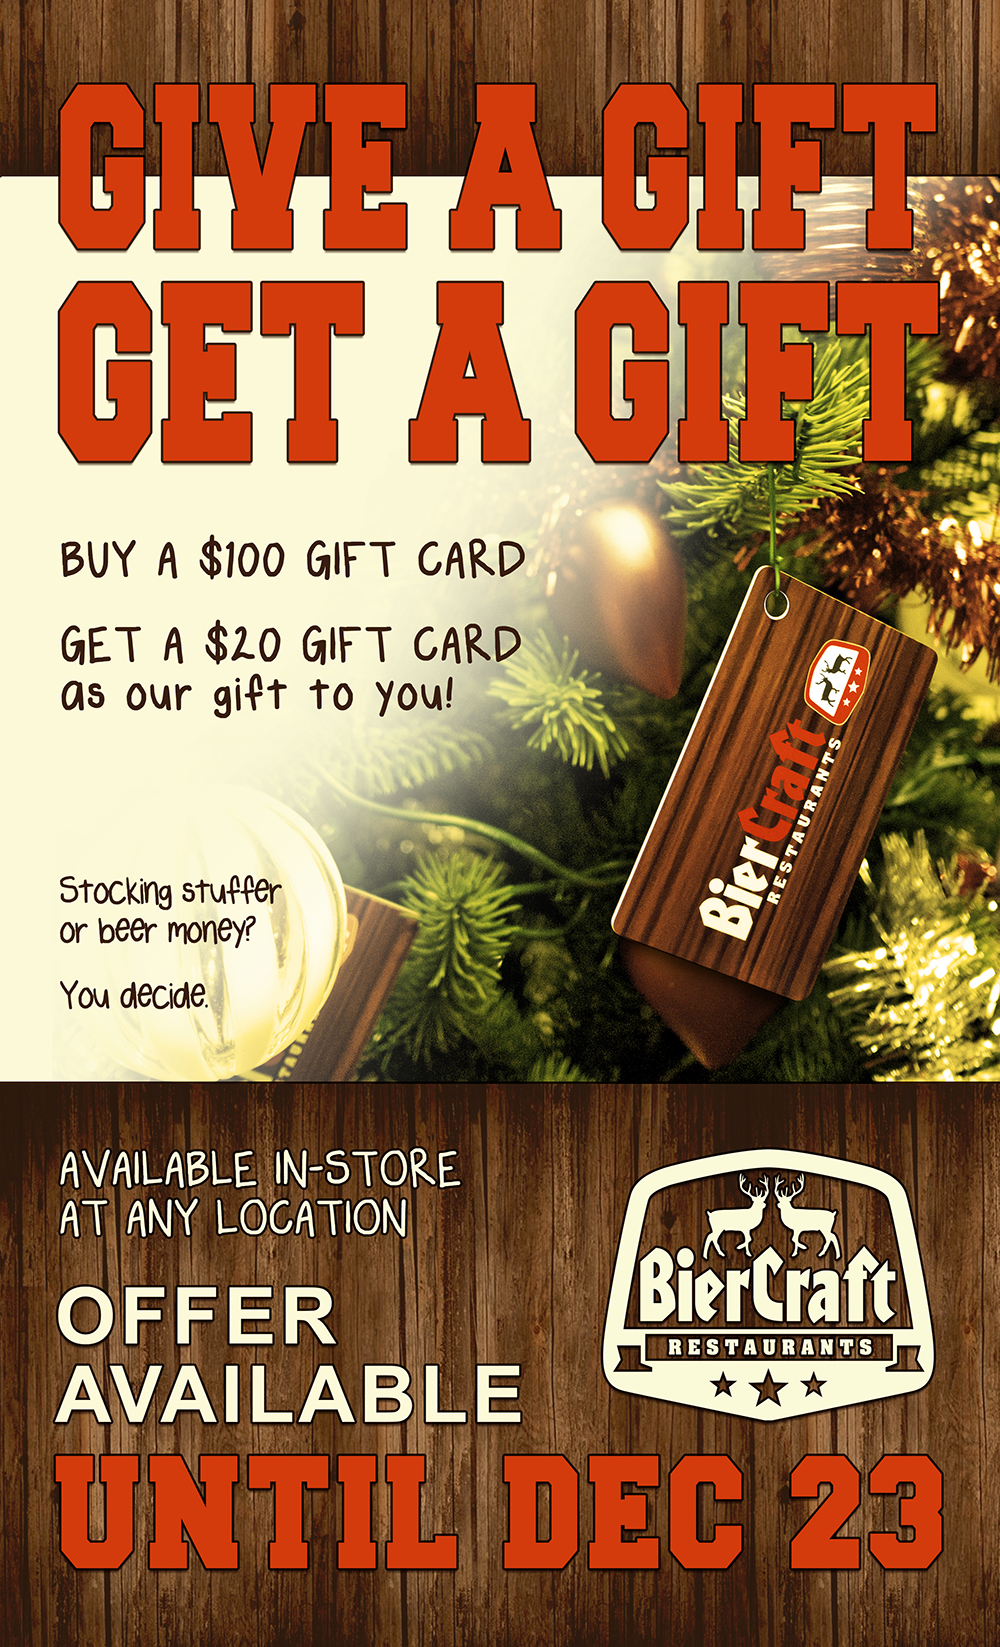 BierCraft Gift Card Promotion